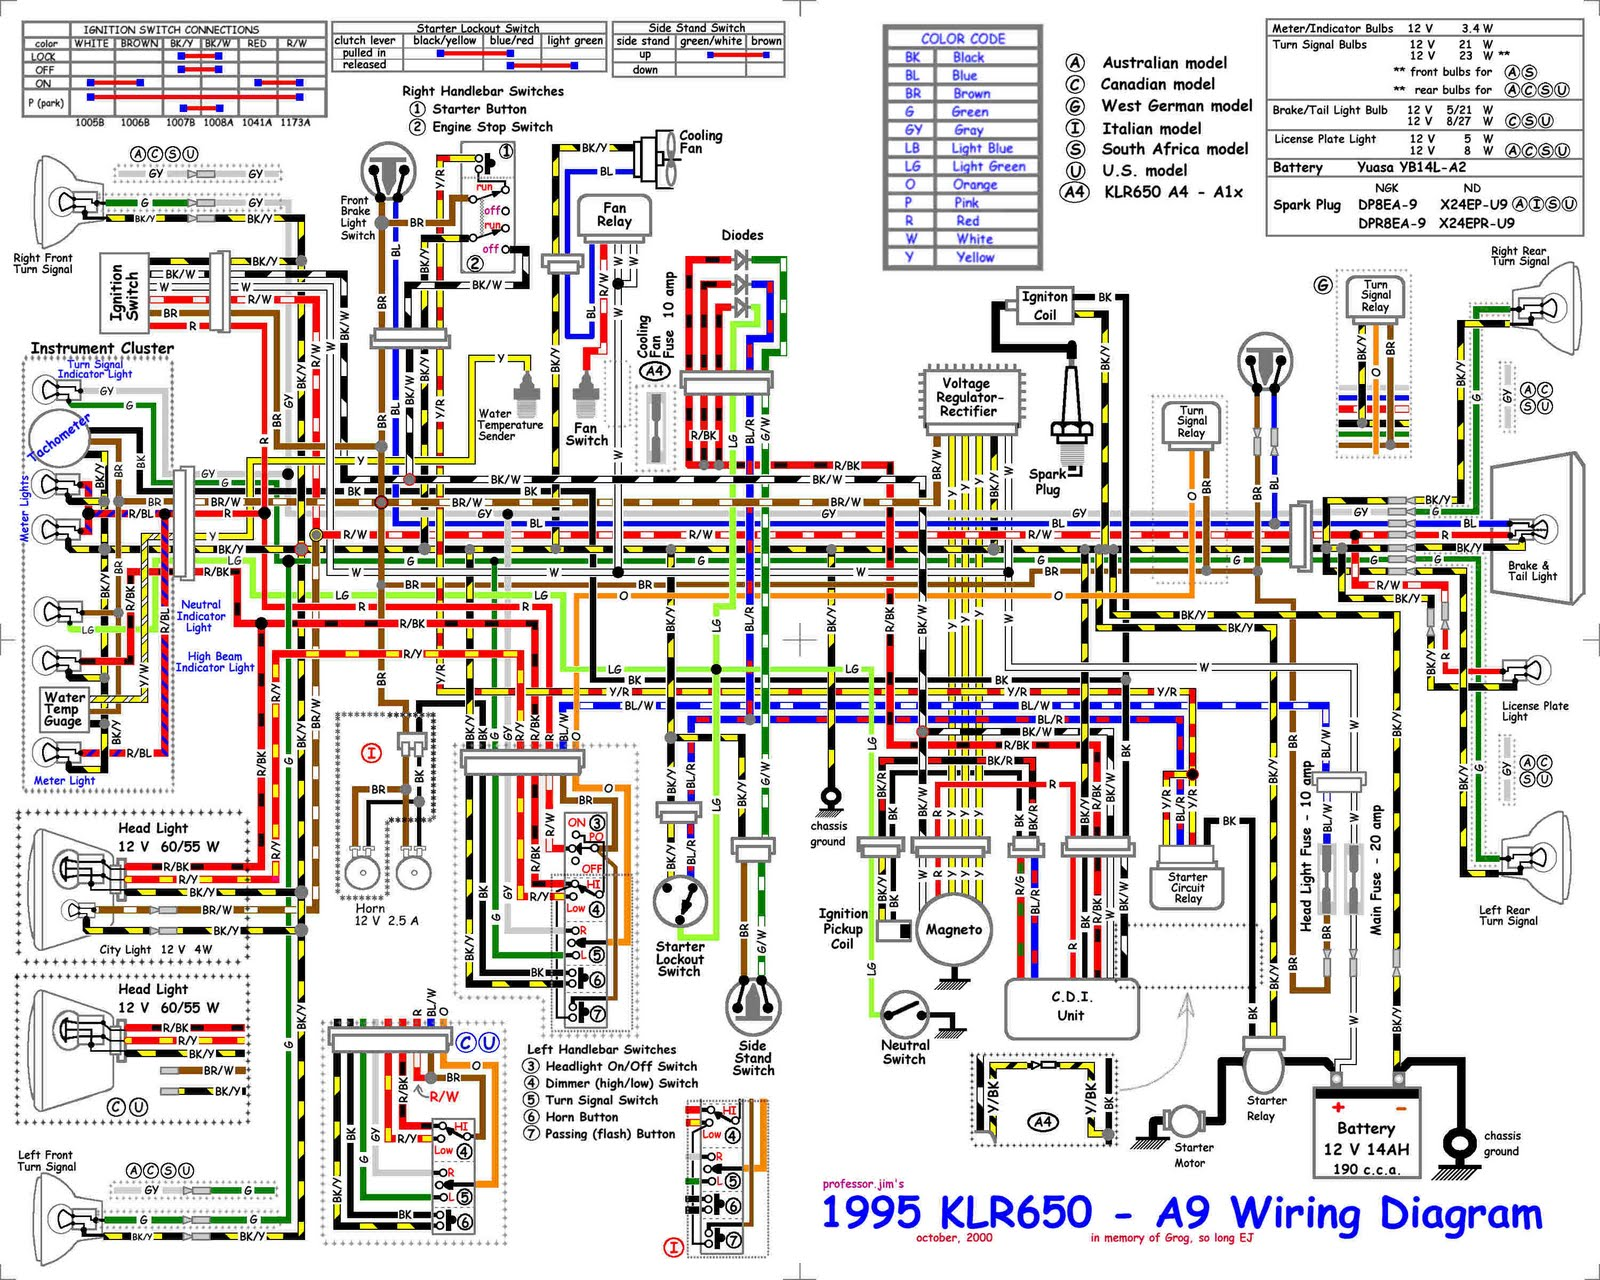 1974 Chevrolet Monte Carlo Wiring on mack ecu wiring diagram